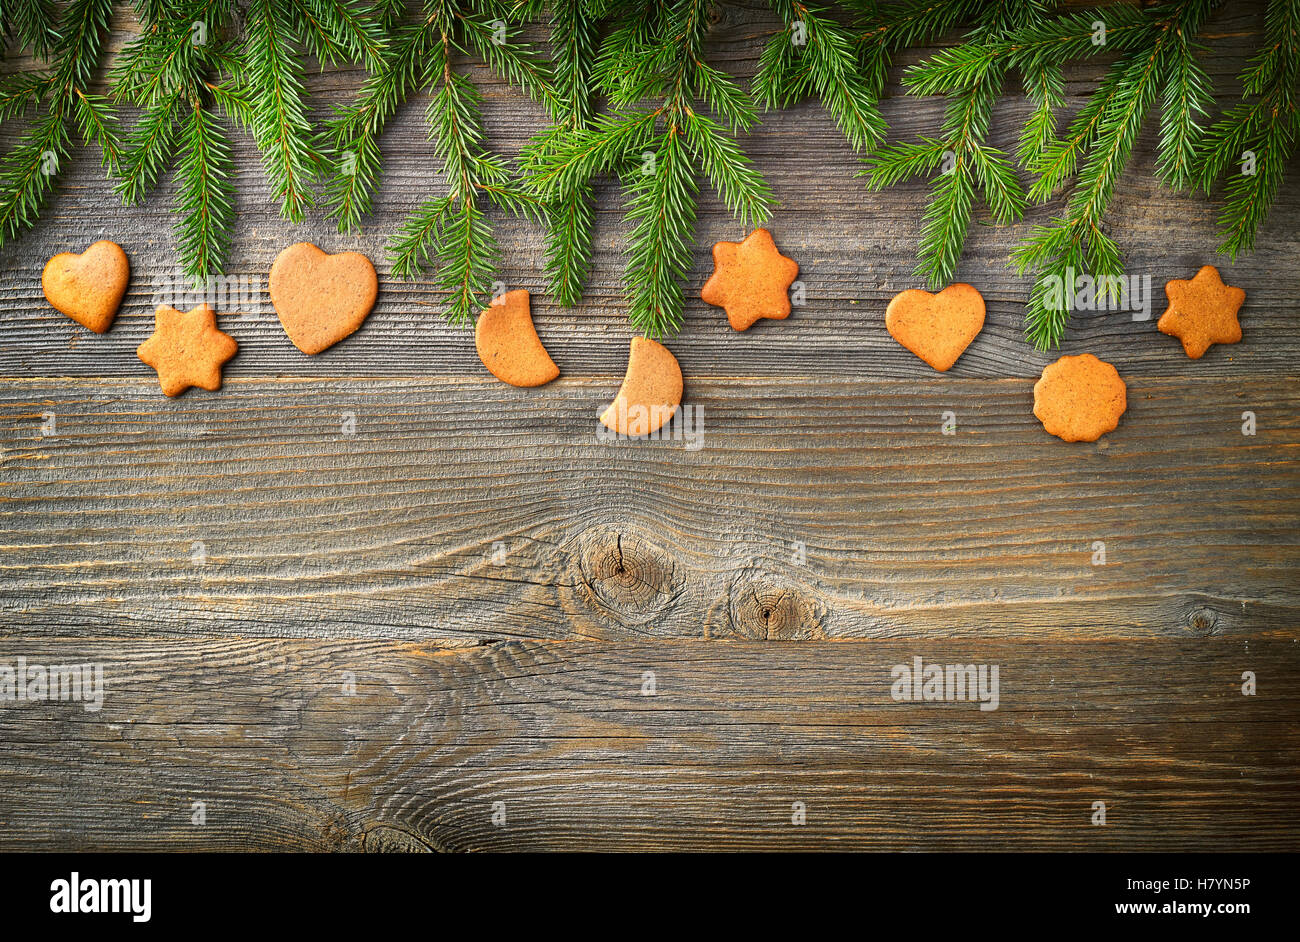 Christmas fir tree or spruce branches and christmas cookies on wooden background, top view - Stock Image